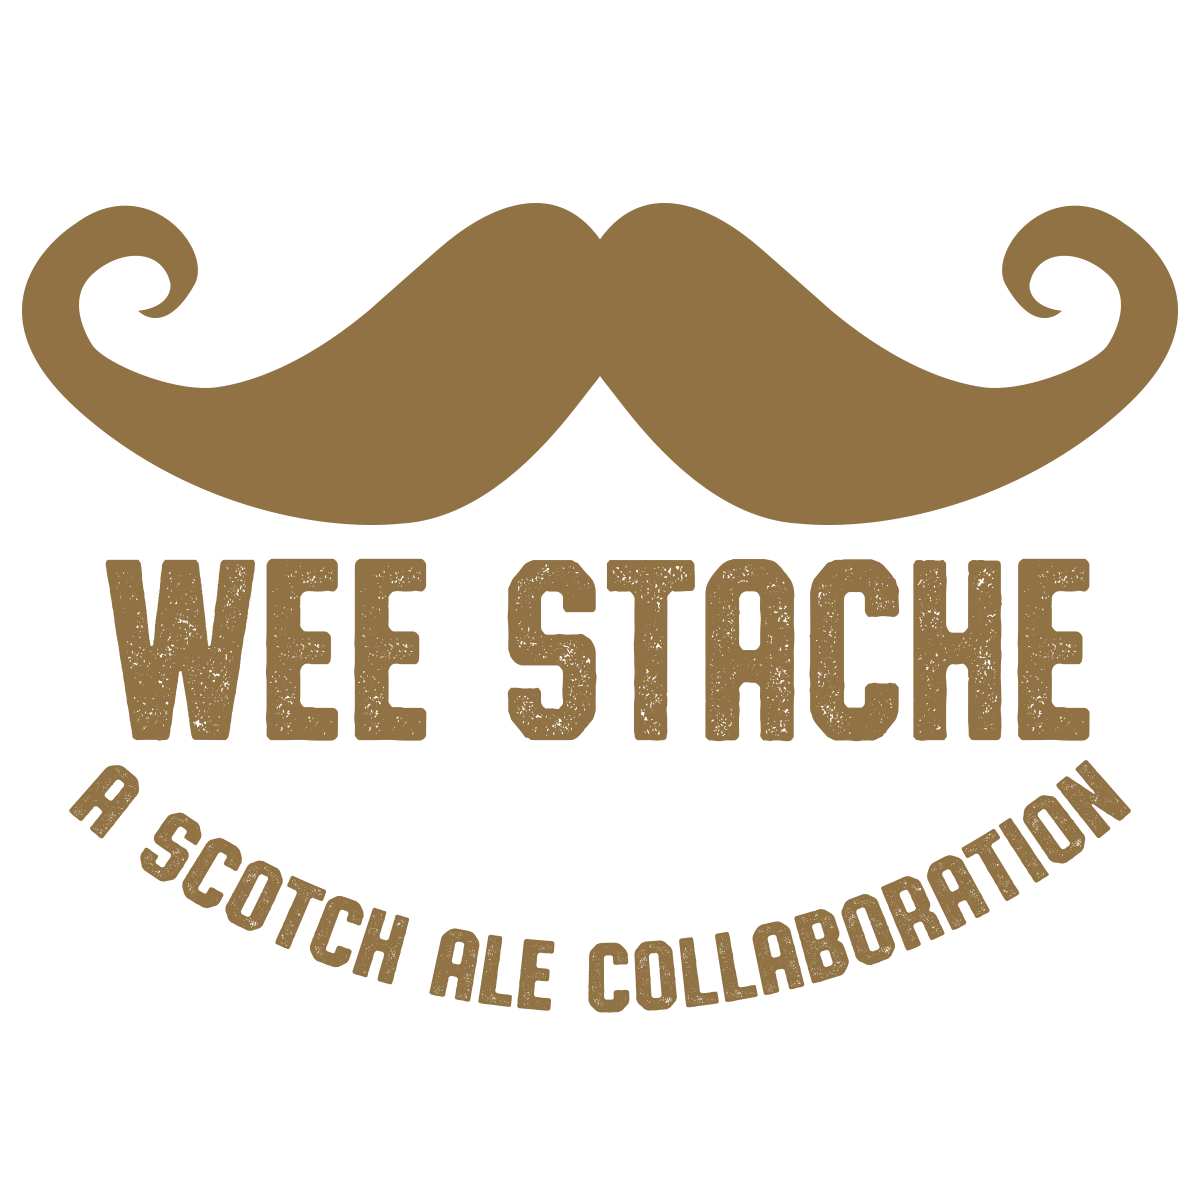 Wee Stache for Website.png